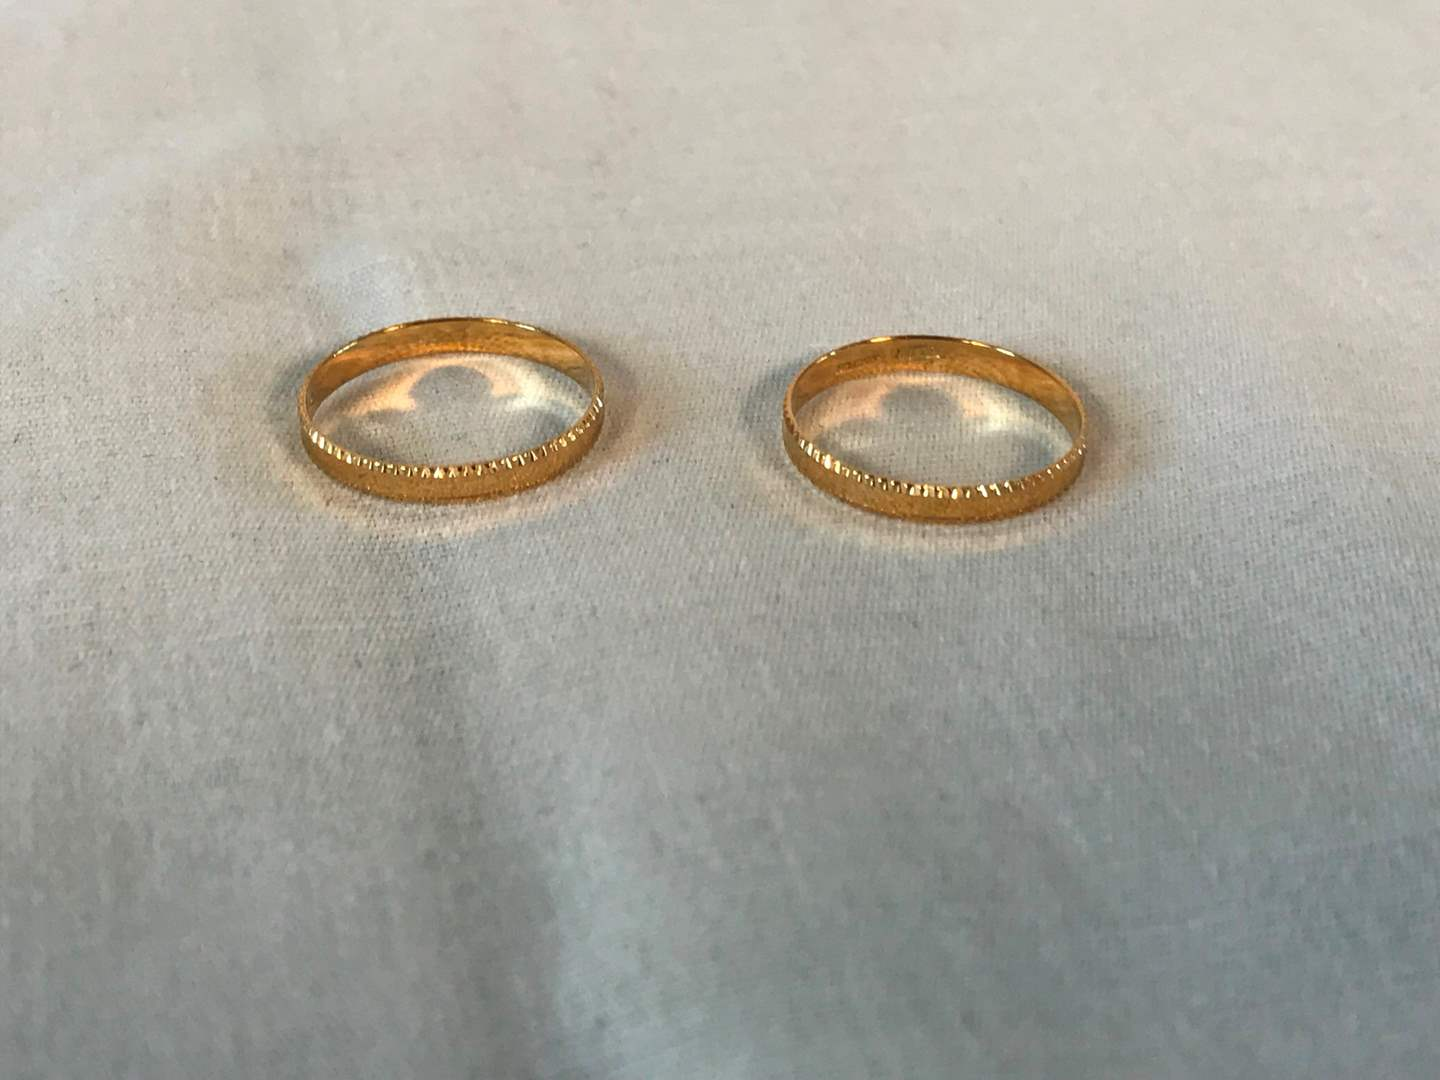 Lot # 238 - 2 18k Gold Rings - 2.30 grams (Tested). (main image)